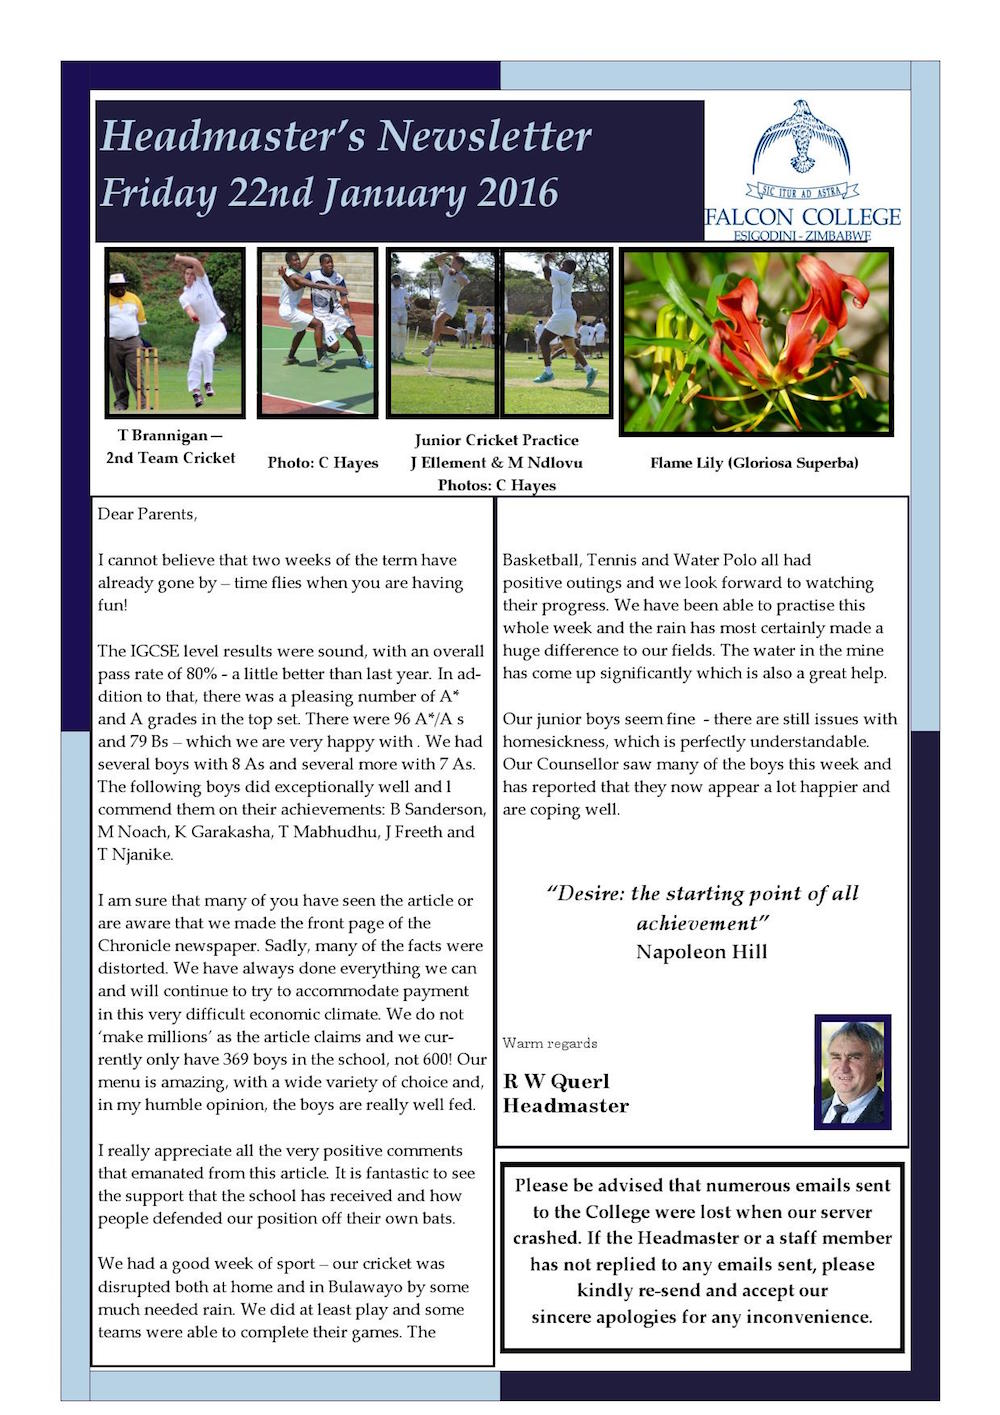 Headmaster's Newsletter Friday 22nd January 2016 edited_000001